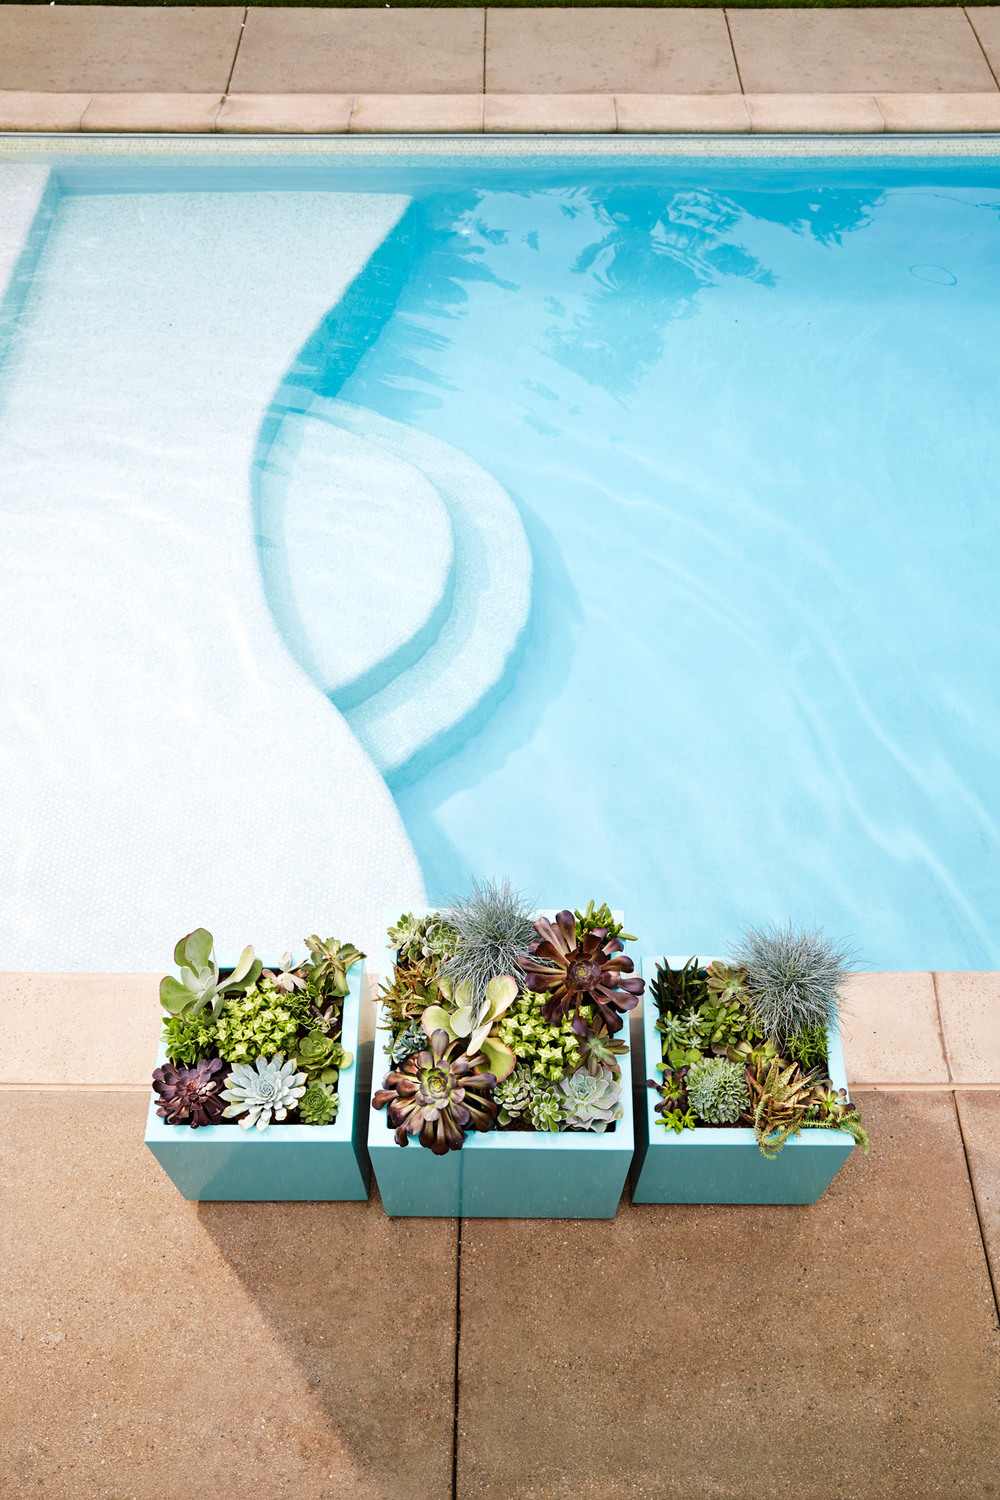 Lifestyle photography Derek Israelsen Poolside